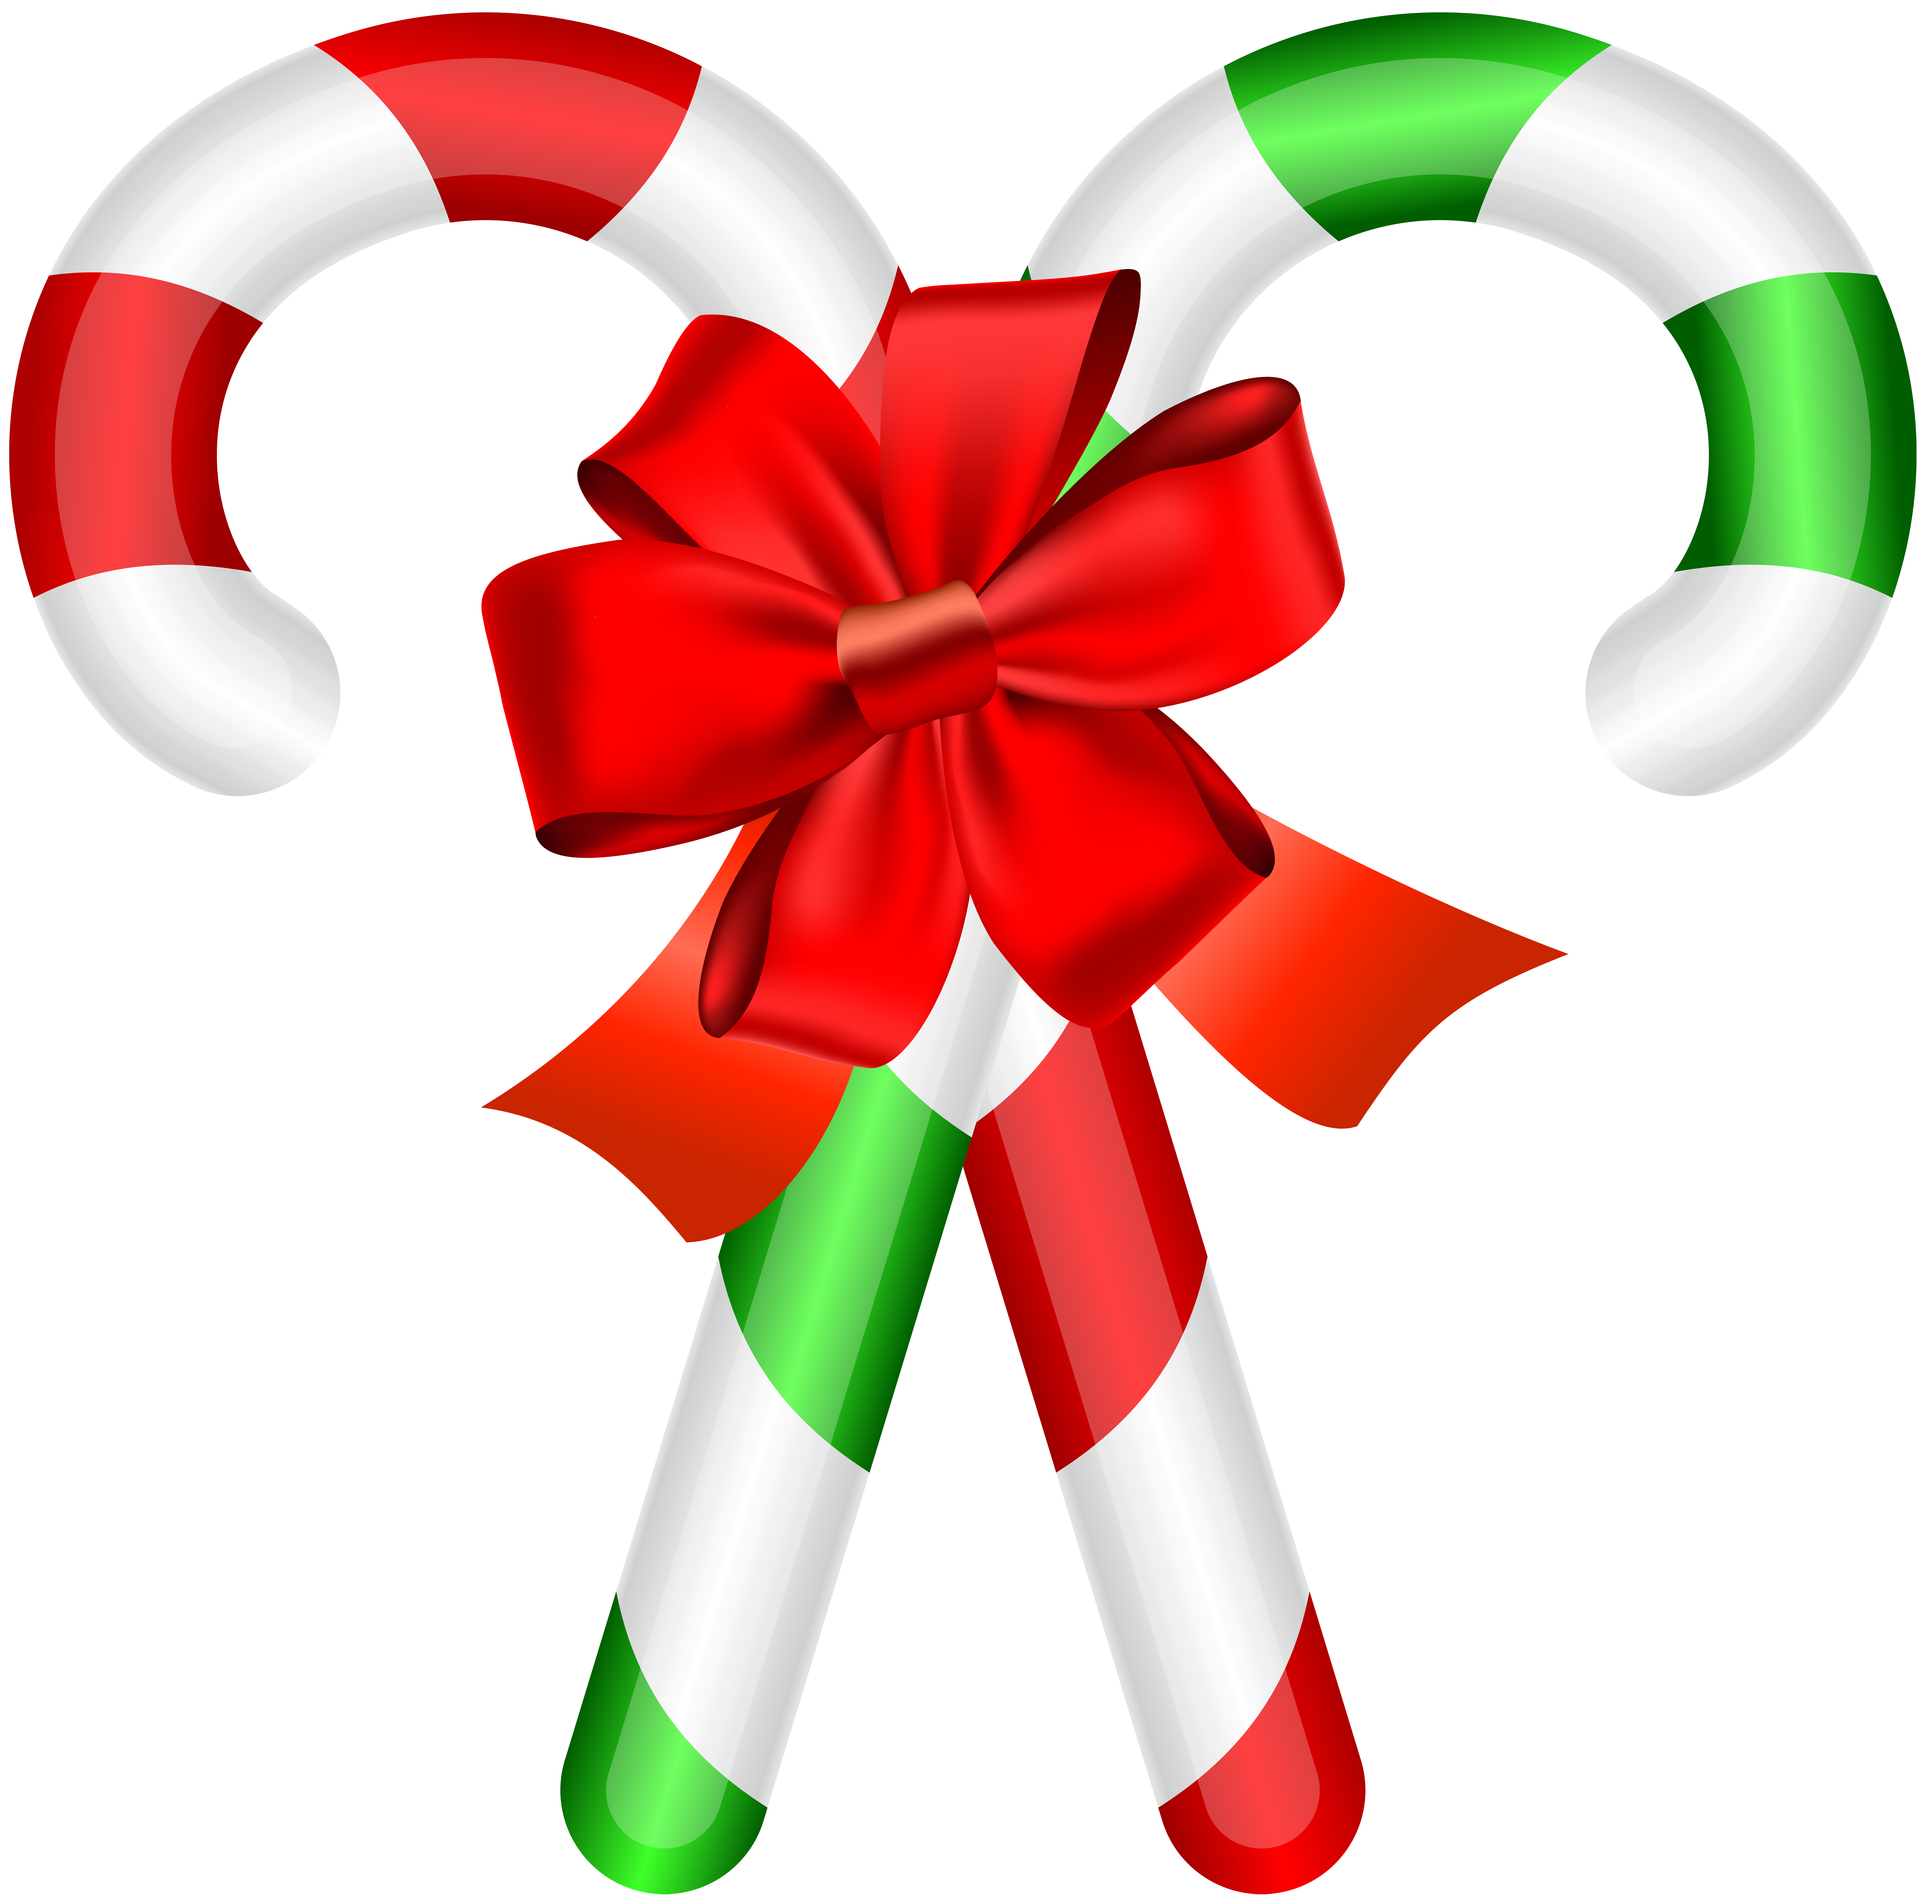 Christmas candy cane clipart vector library Christmas Candy Canes PNG Clip Art Image | Gallery Yopriceville ... vector library